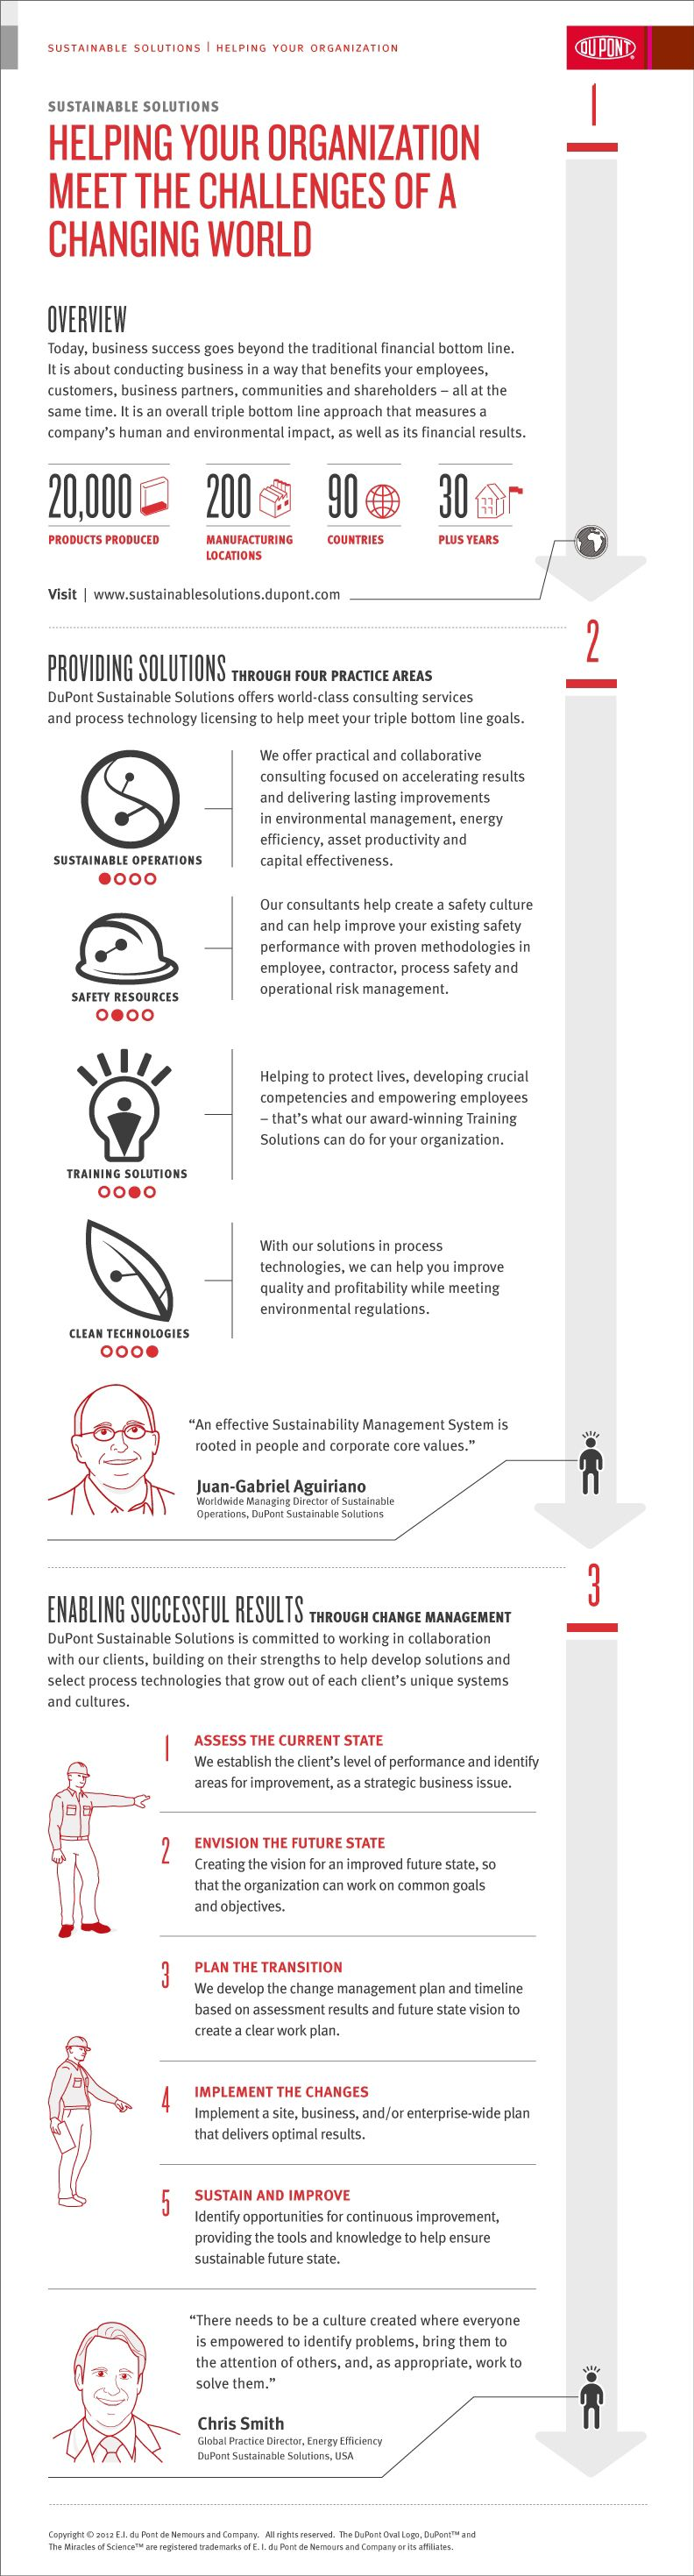 DuPont_Infographic_YourOrganization_10152012